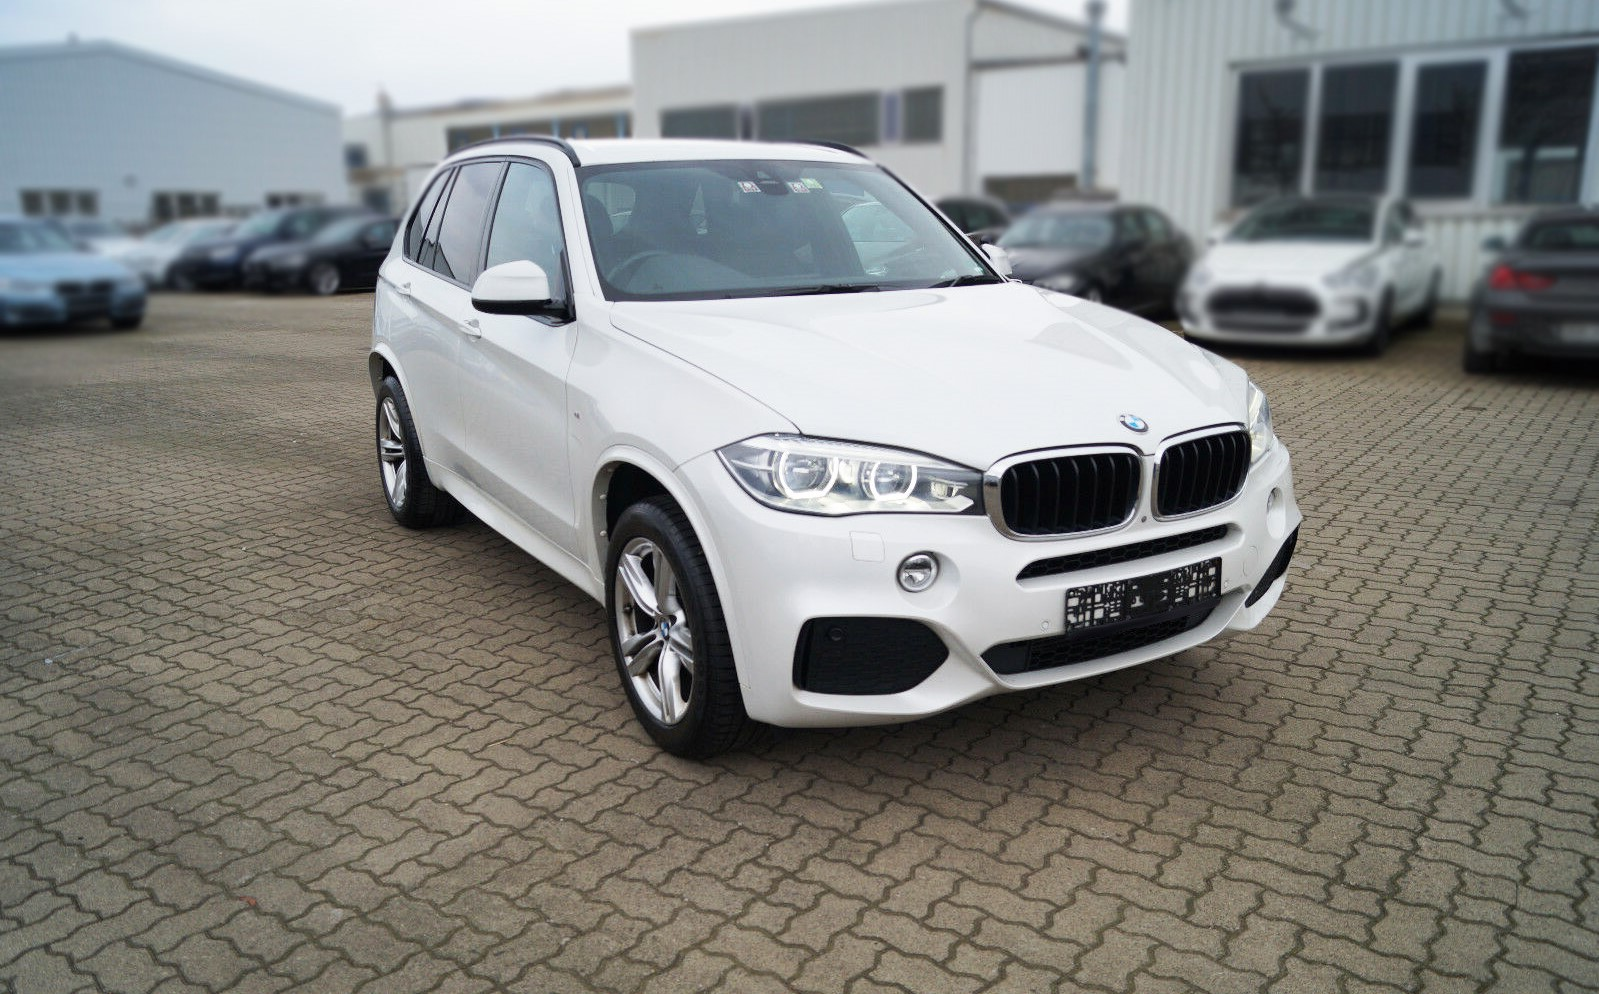 BMW X5 (F15) 2013-2018 | Different Car Review